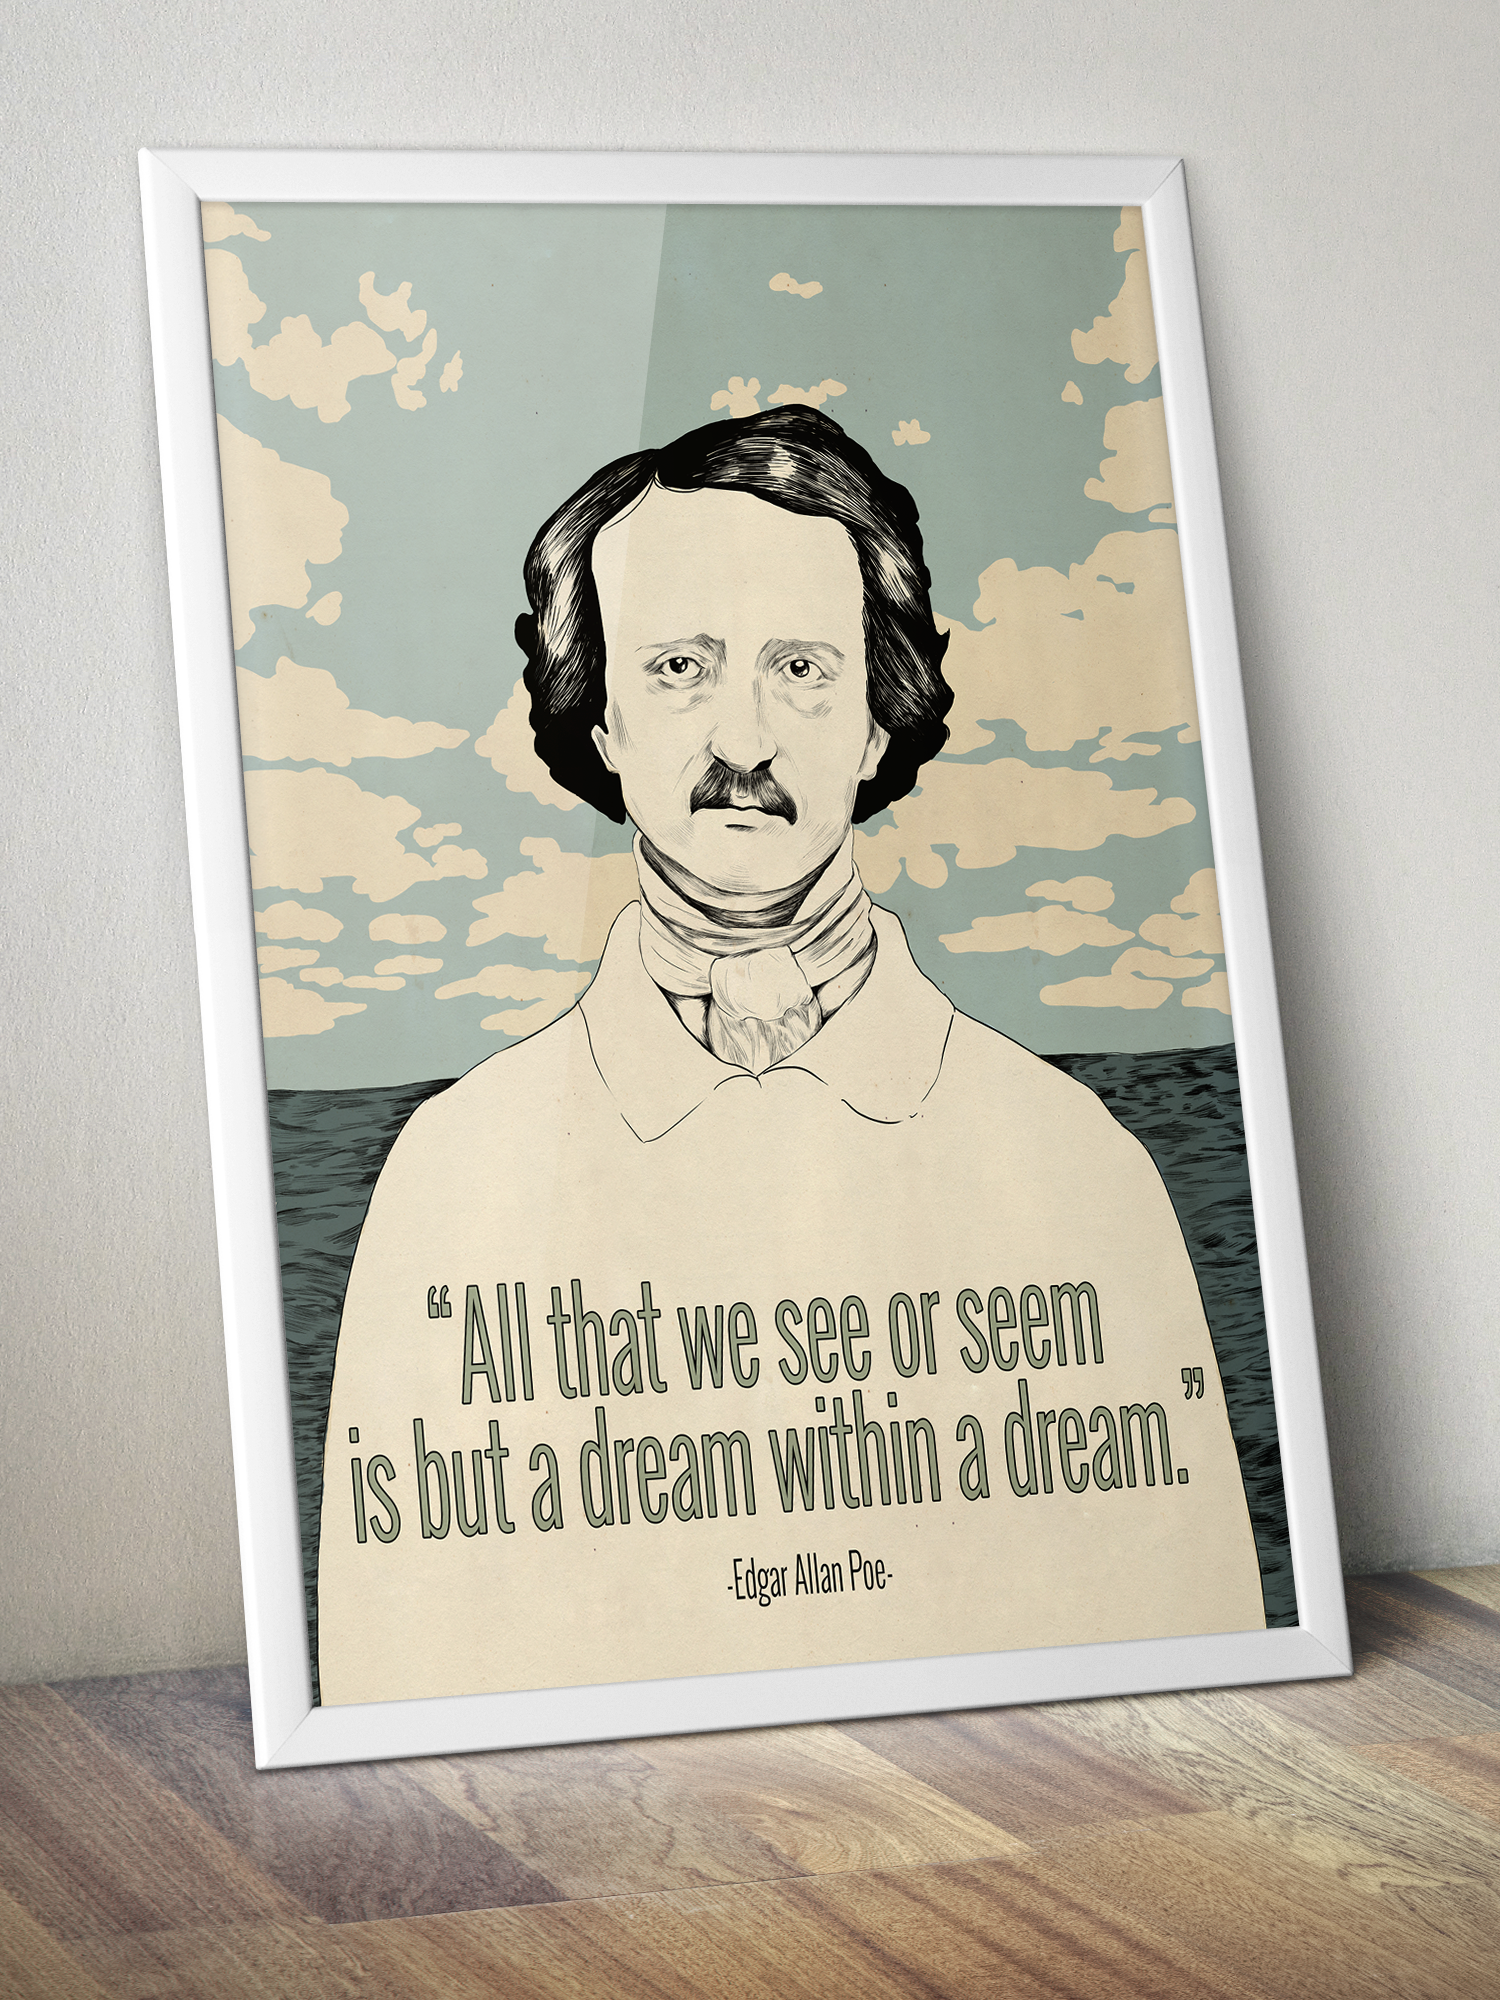 Edgar Allan Poe Art Printable Wall Art Dream Within A Dream Etsy In 2020 Edgar Allan Poe Art Printable Wall Art Etsy Wall Art